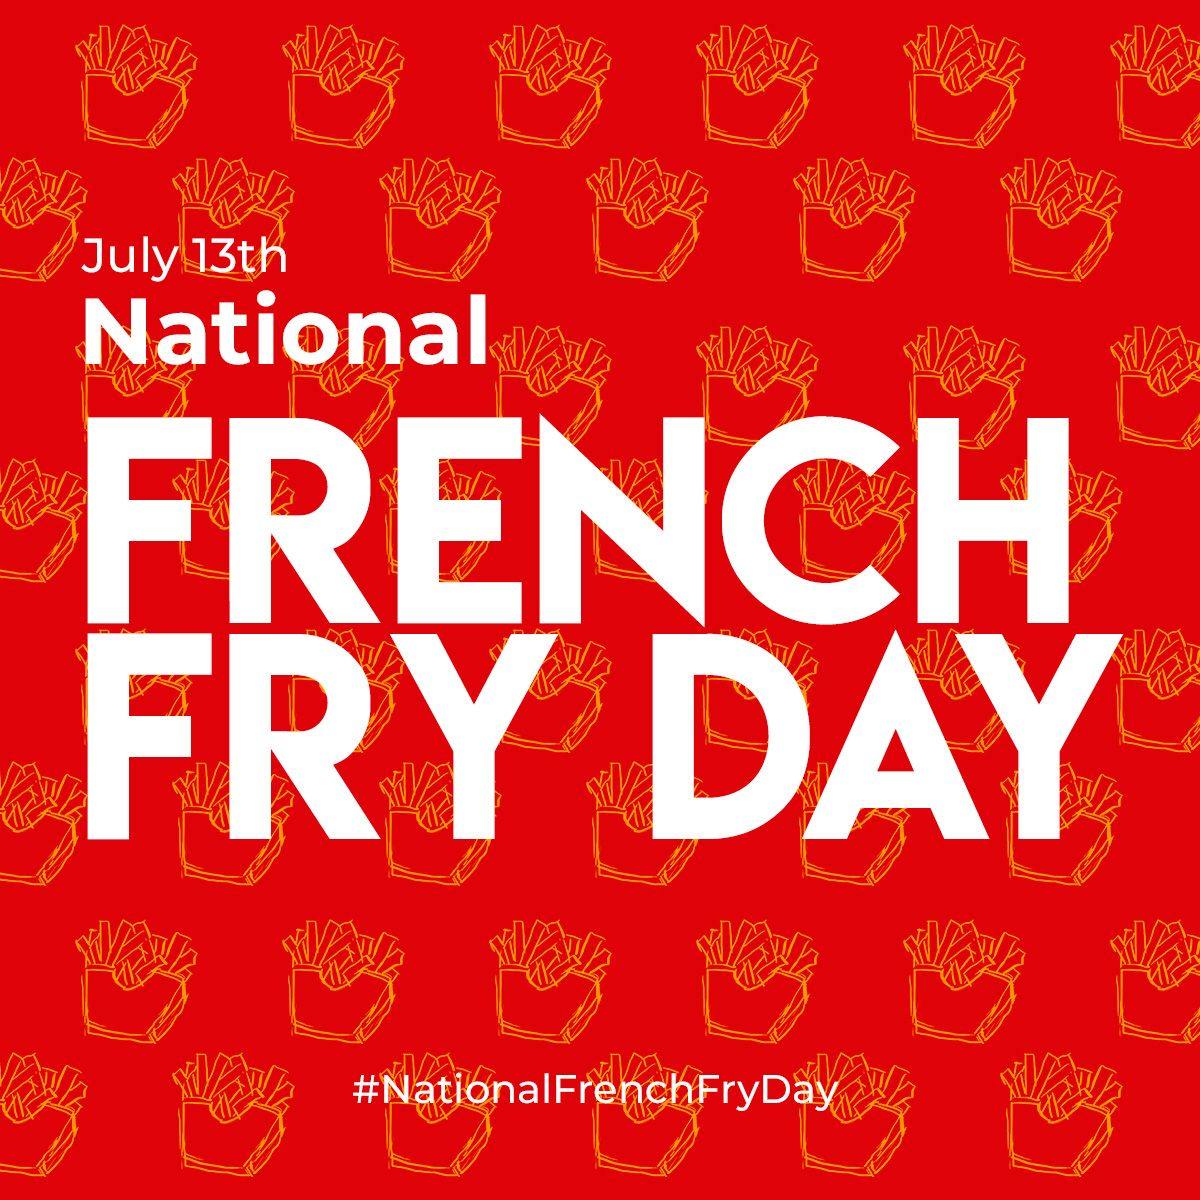 Today is national French Fry Day so treat yourself to some fries for lunch today!!!